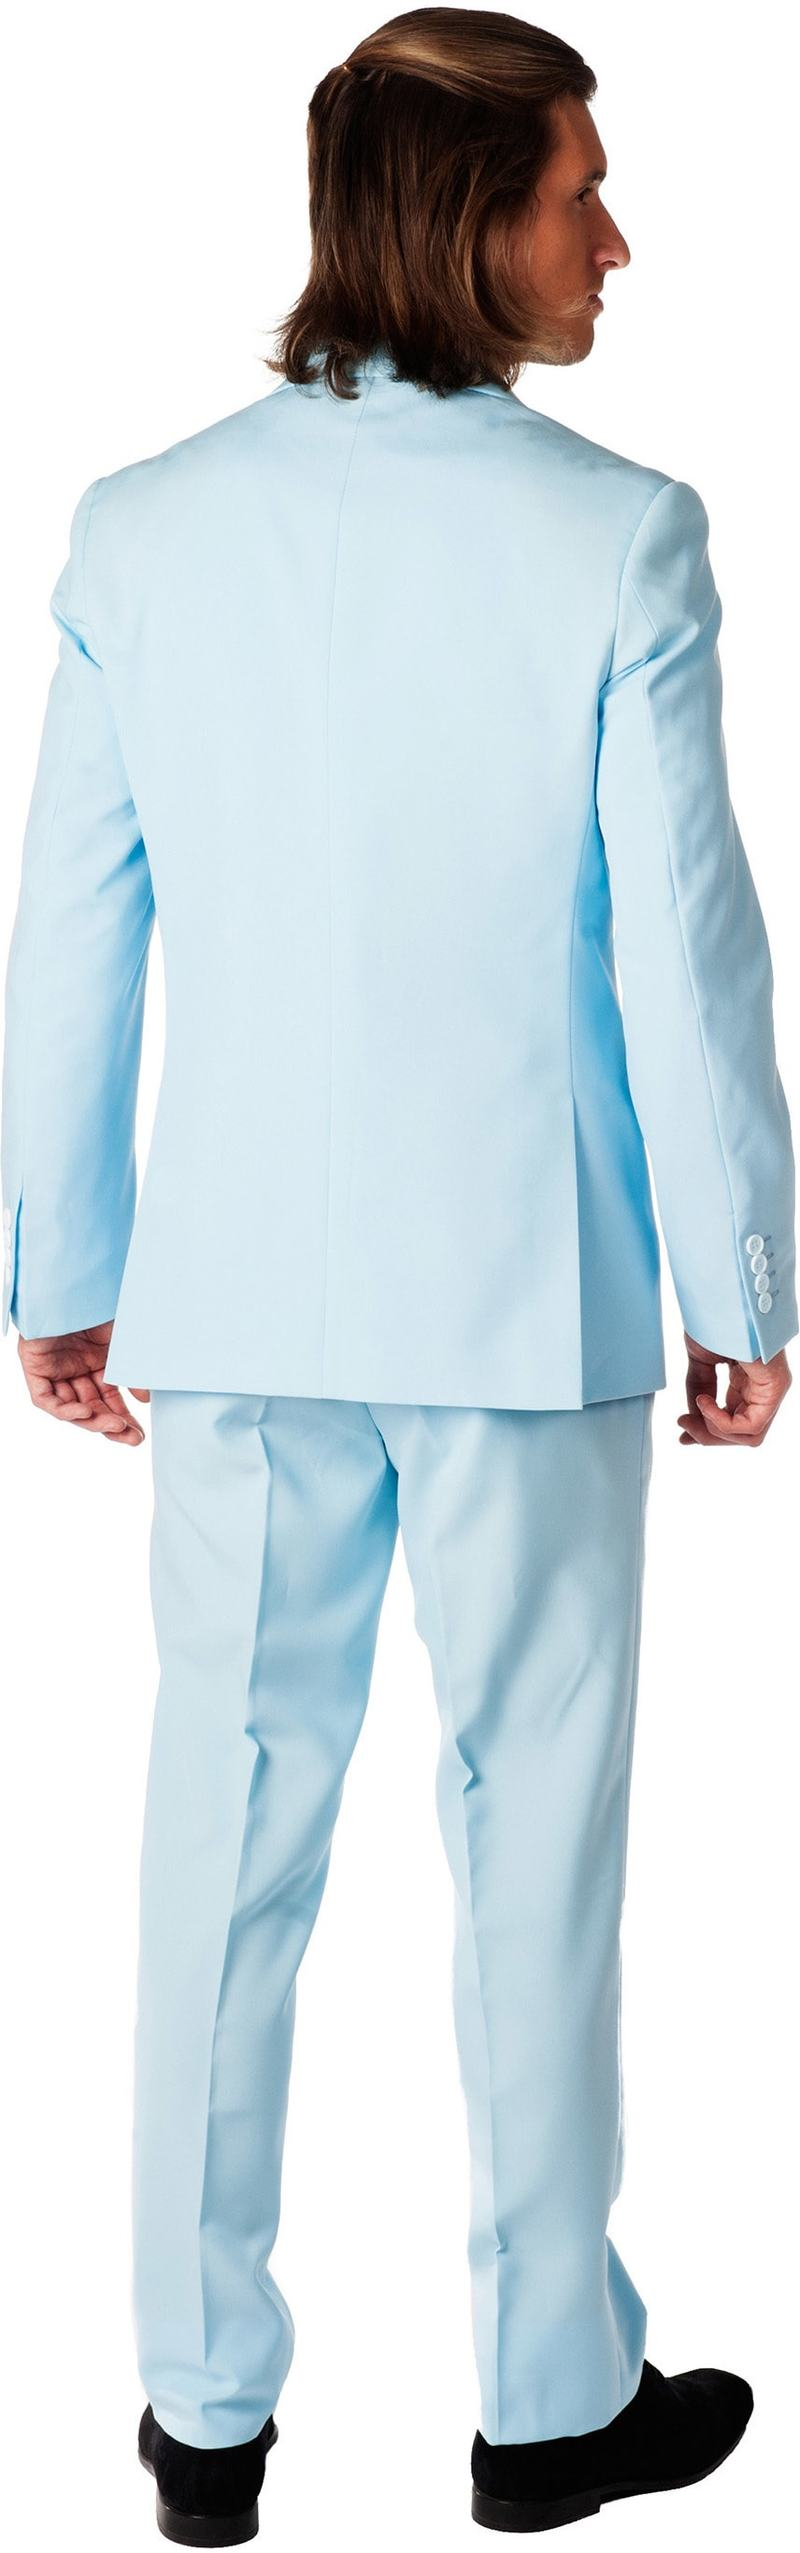 OppoSuits Cool Blue Suit photo 1